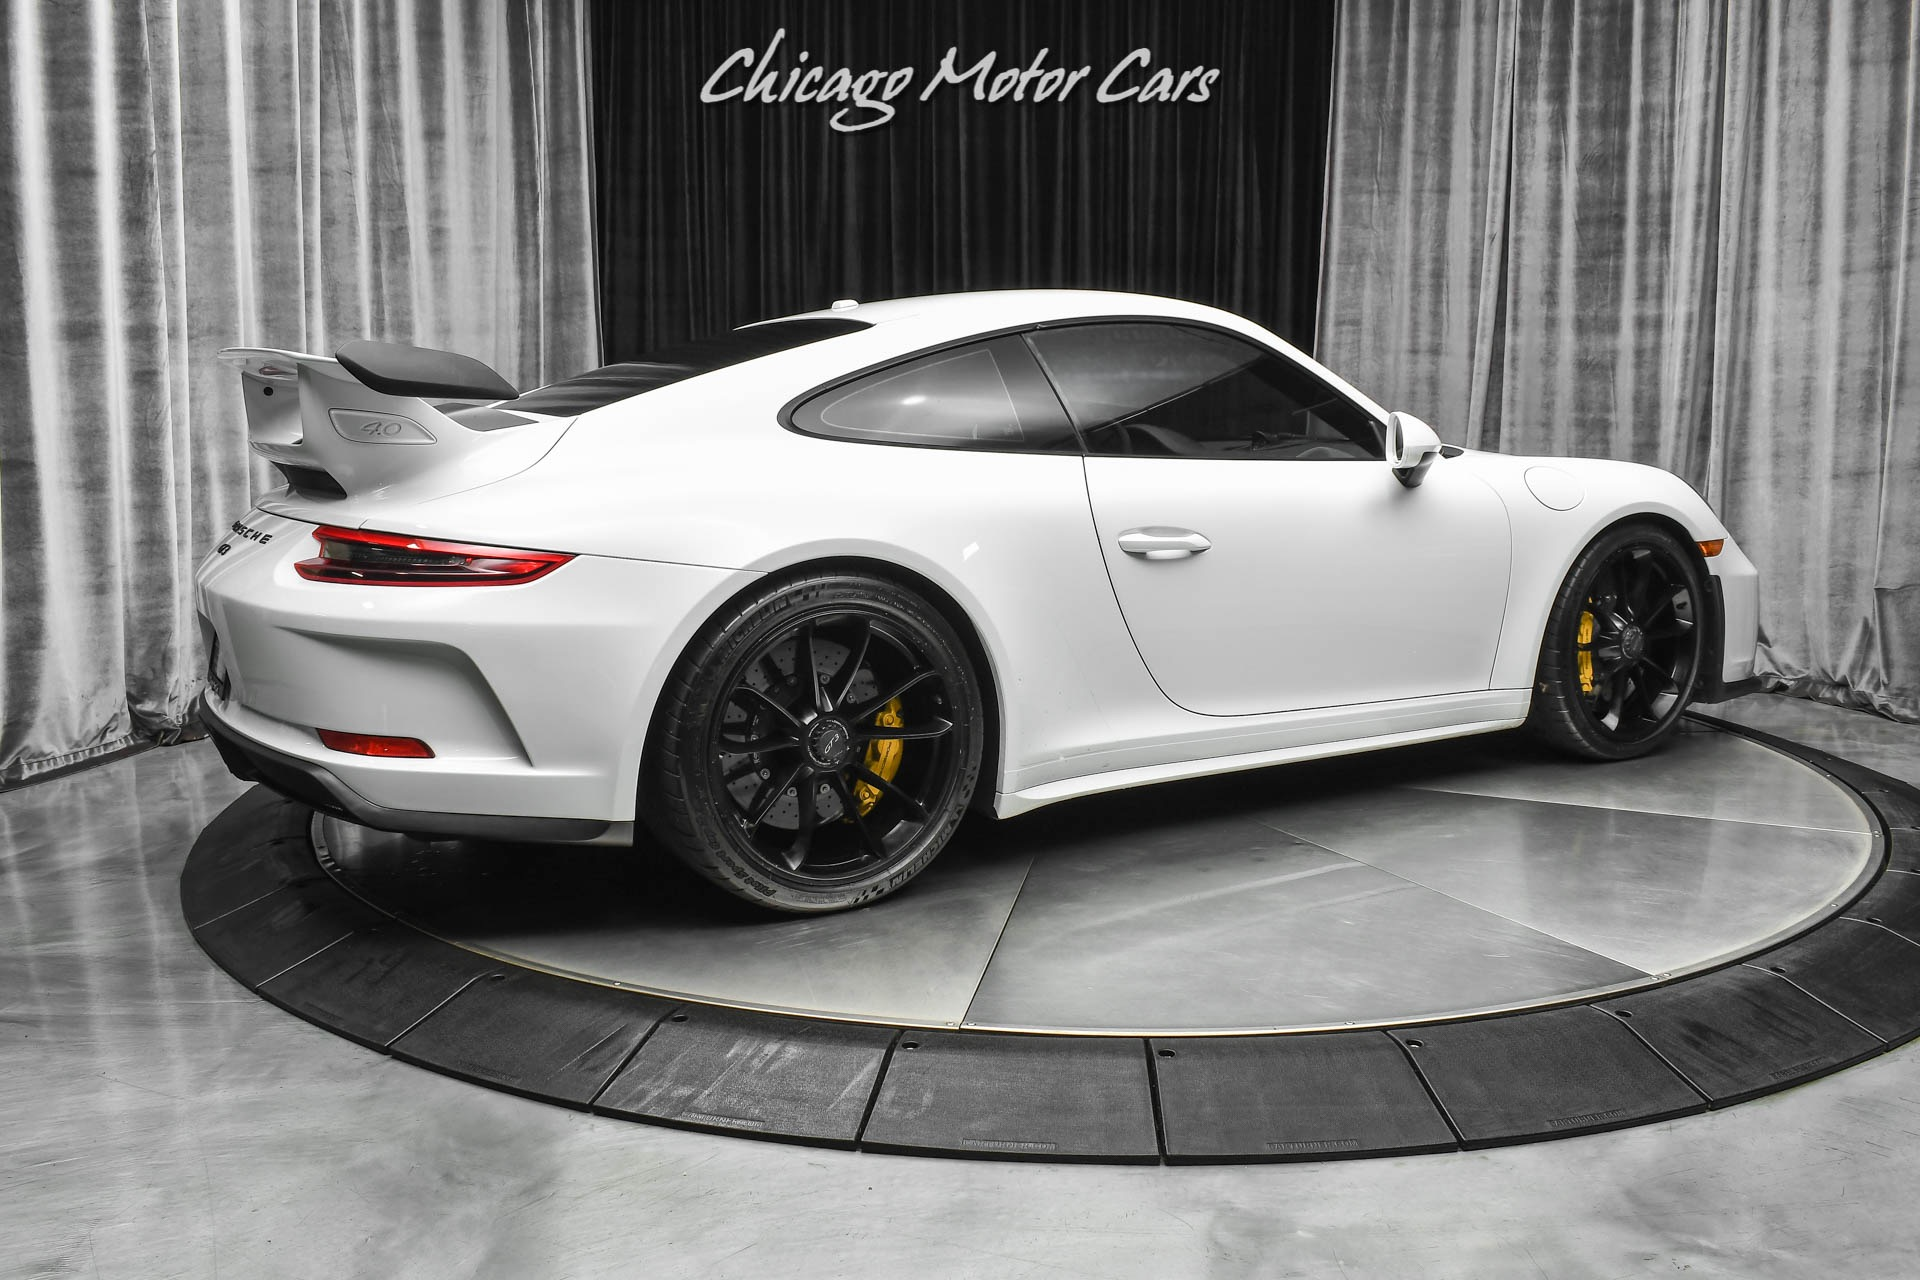 Used-2019-Porsche-911-GT3-6-Speed-Manual-Front-Axle-Lift-PCCB-Loaded